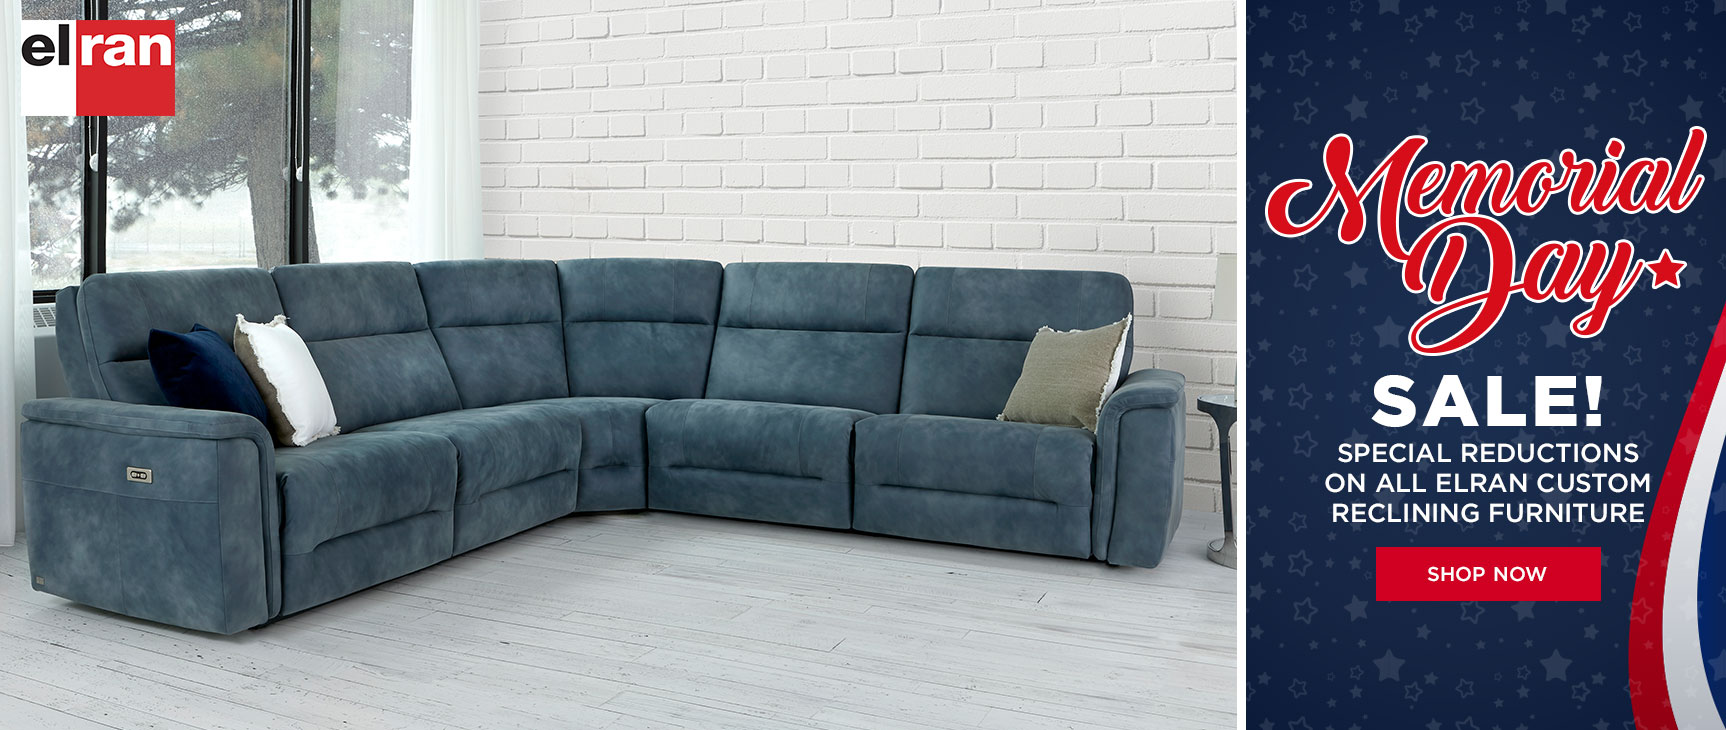 Sofa Express Locations The Finest Selection Of Affordable Home Furniture In Oakhurst Nj